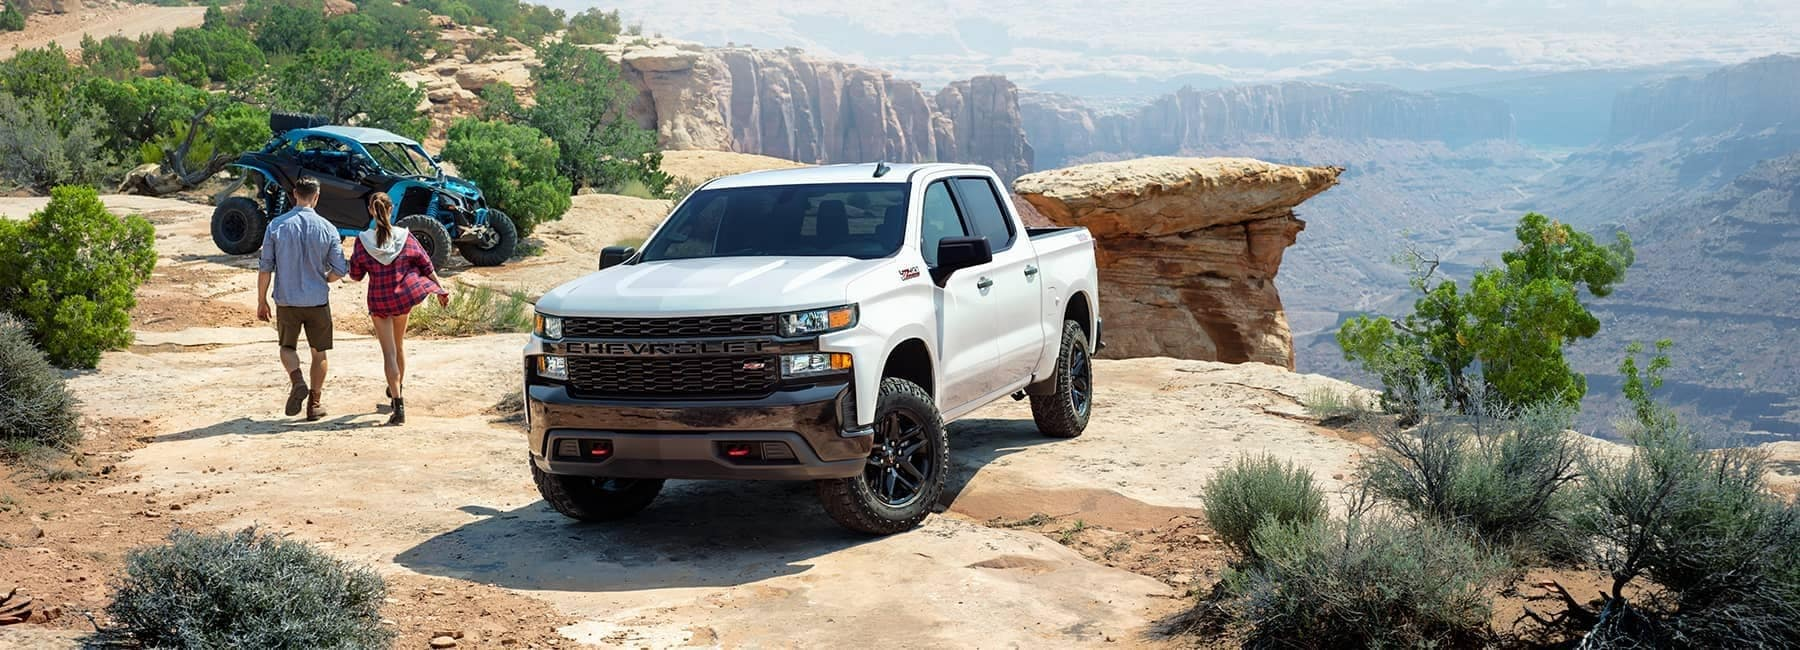 White 2021 Chevrolet Silverado 1500LD Crew Cab Parked by a Cliff